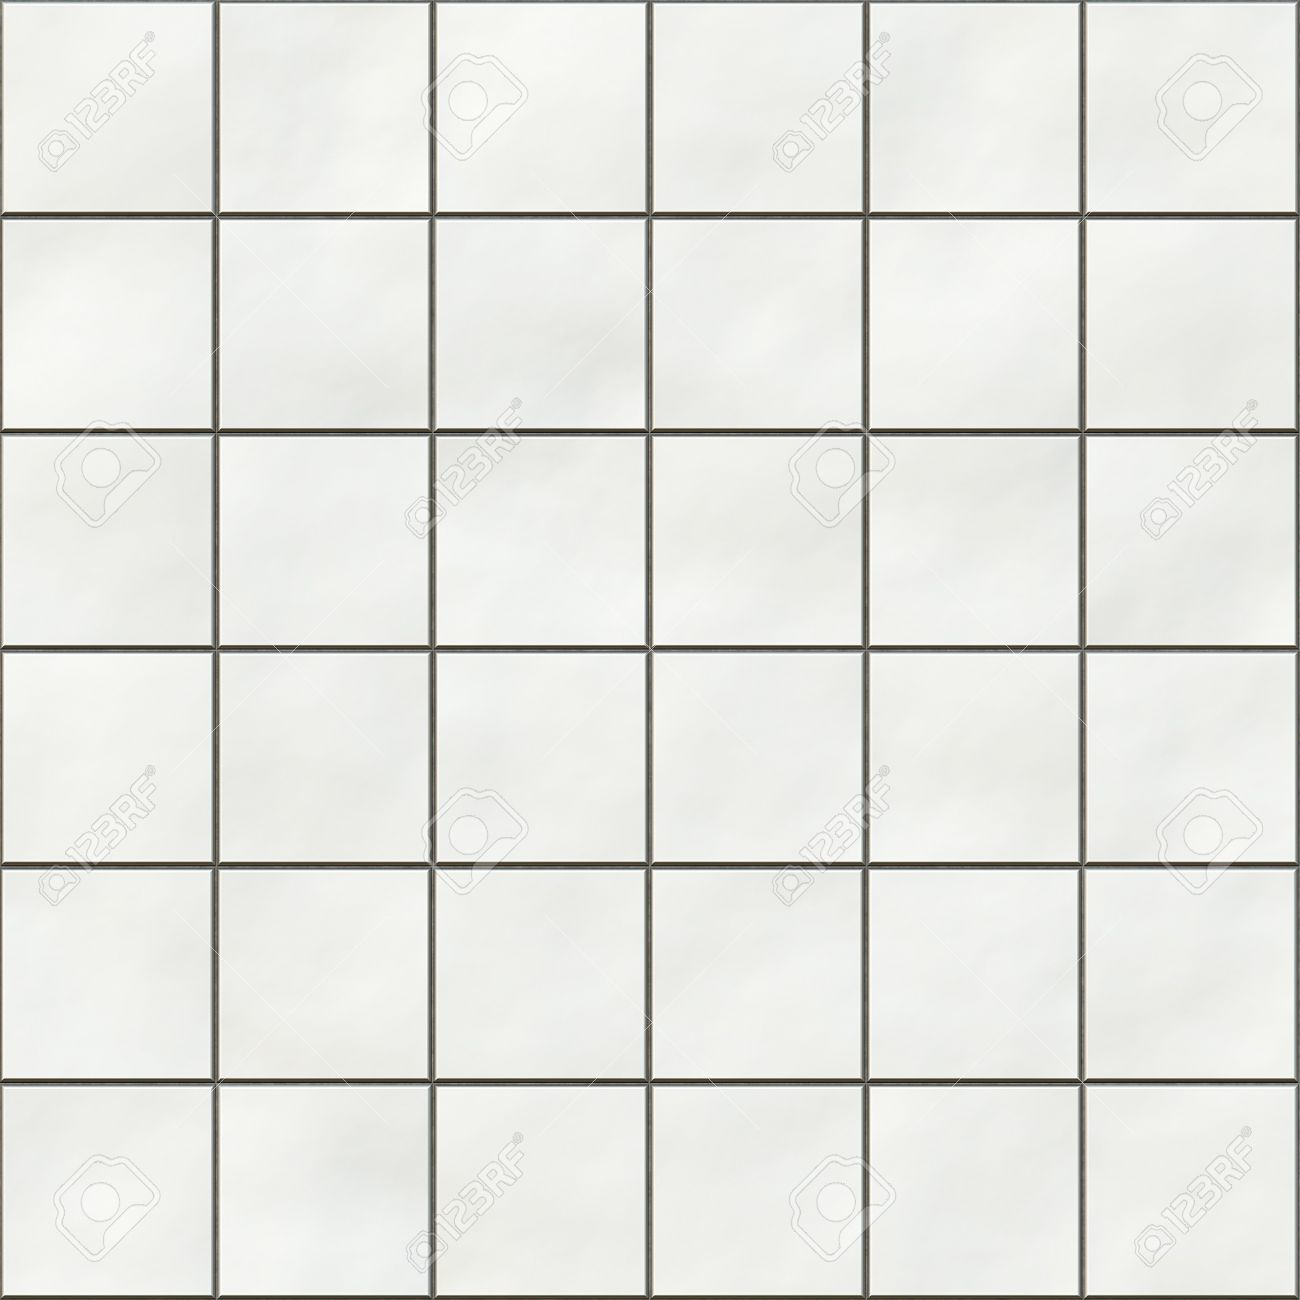 seamless marble floor tiles texture. black and white porcelain tile ...